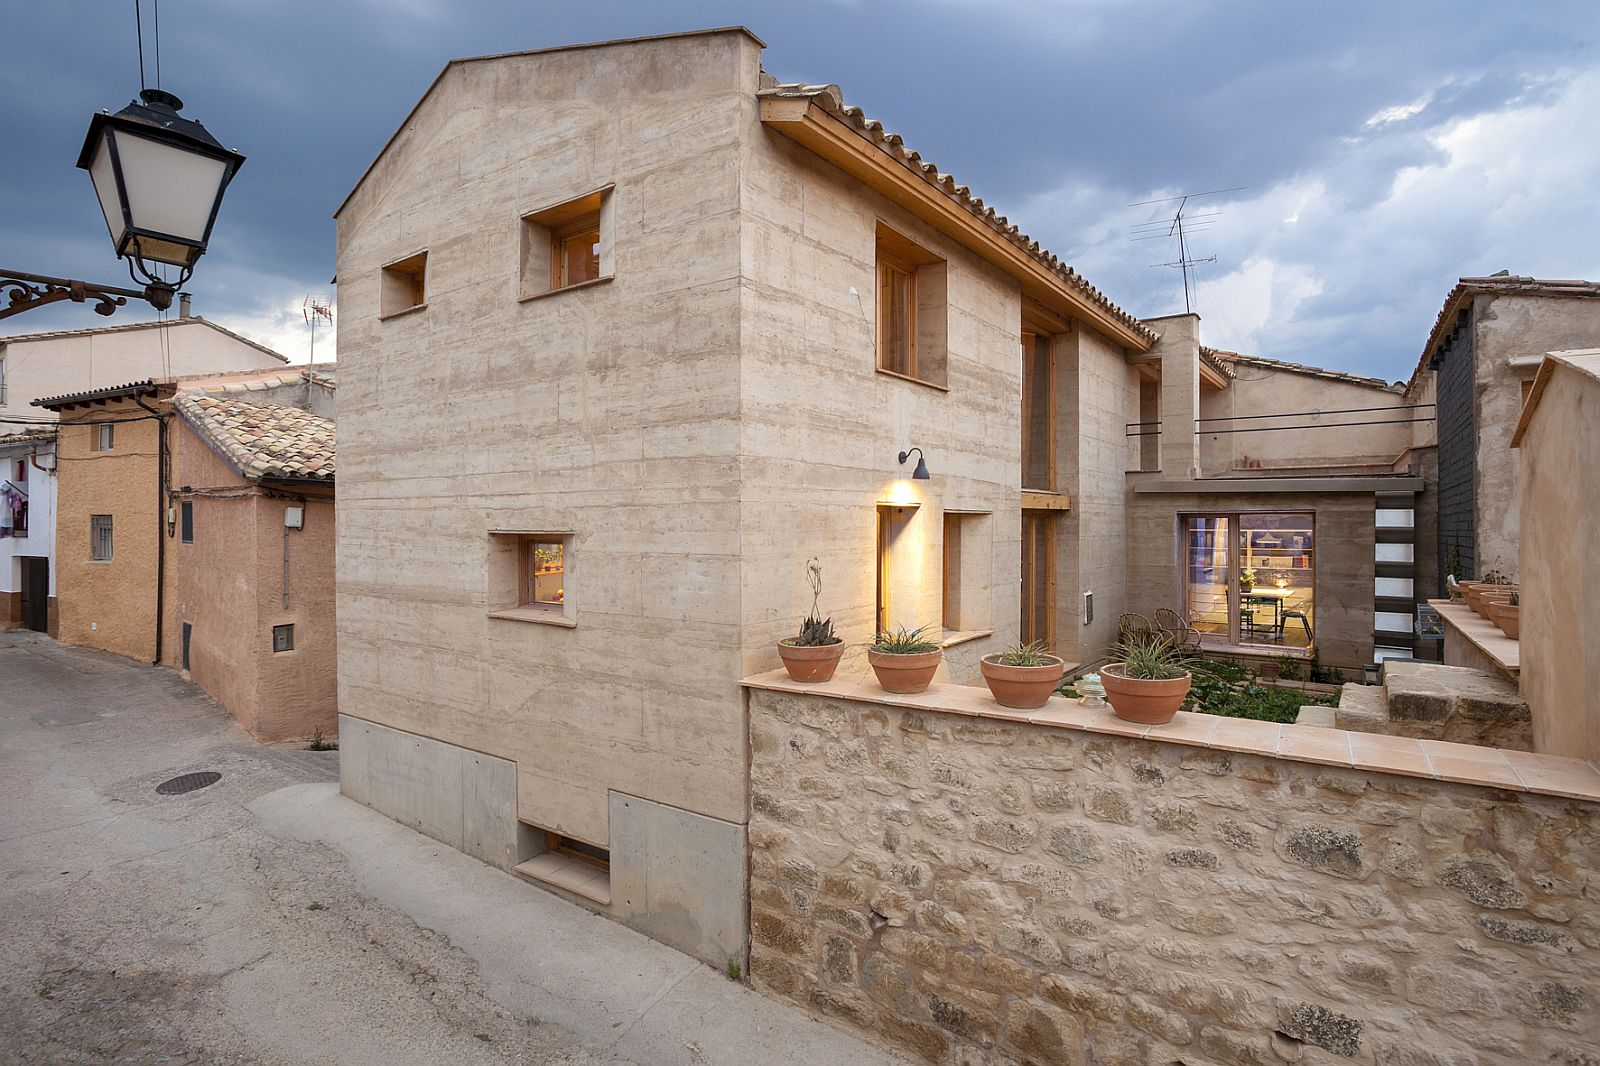 Architectural revival sustainable rammed earth house in spain for Earthen home designs